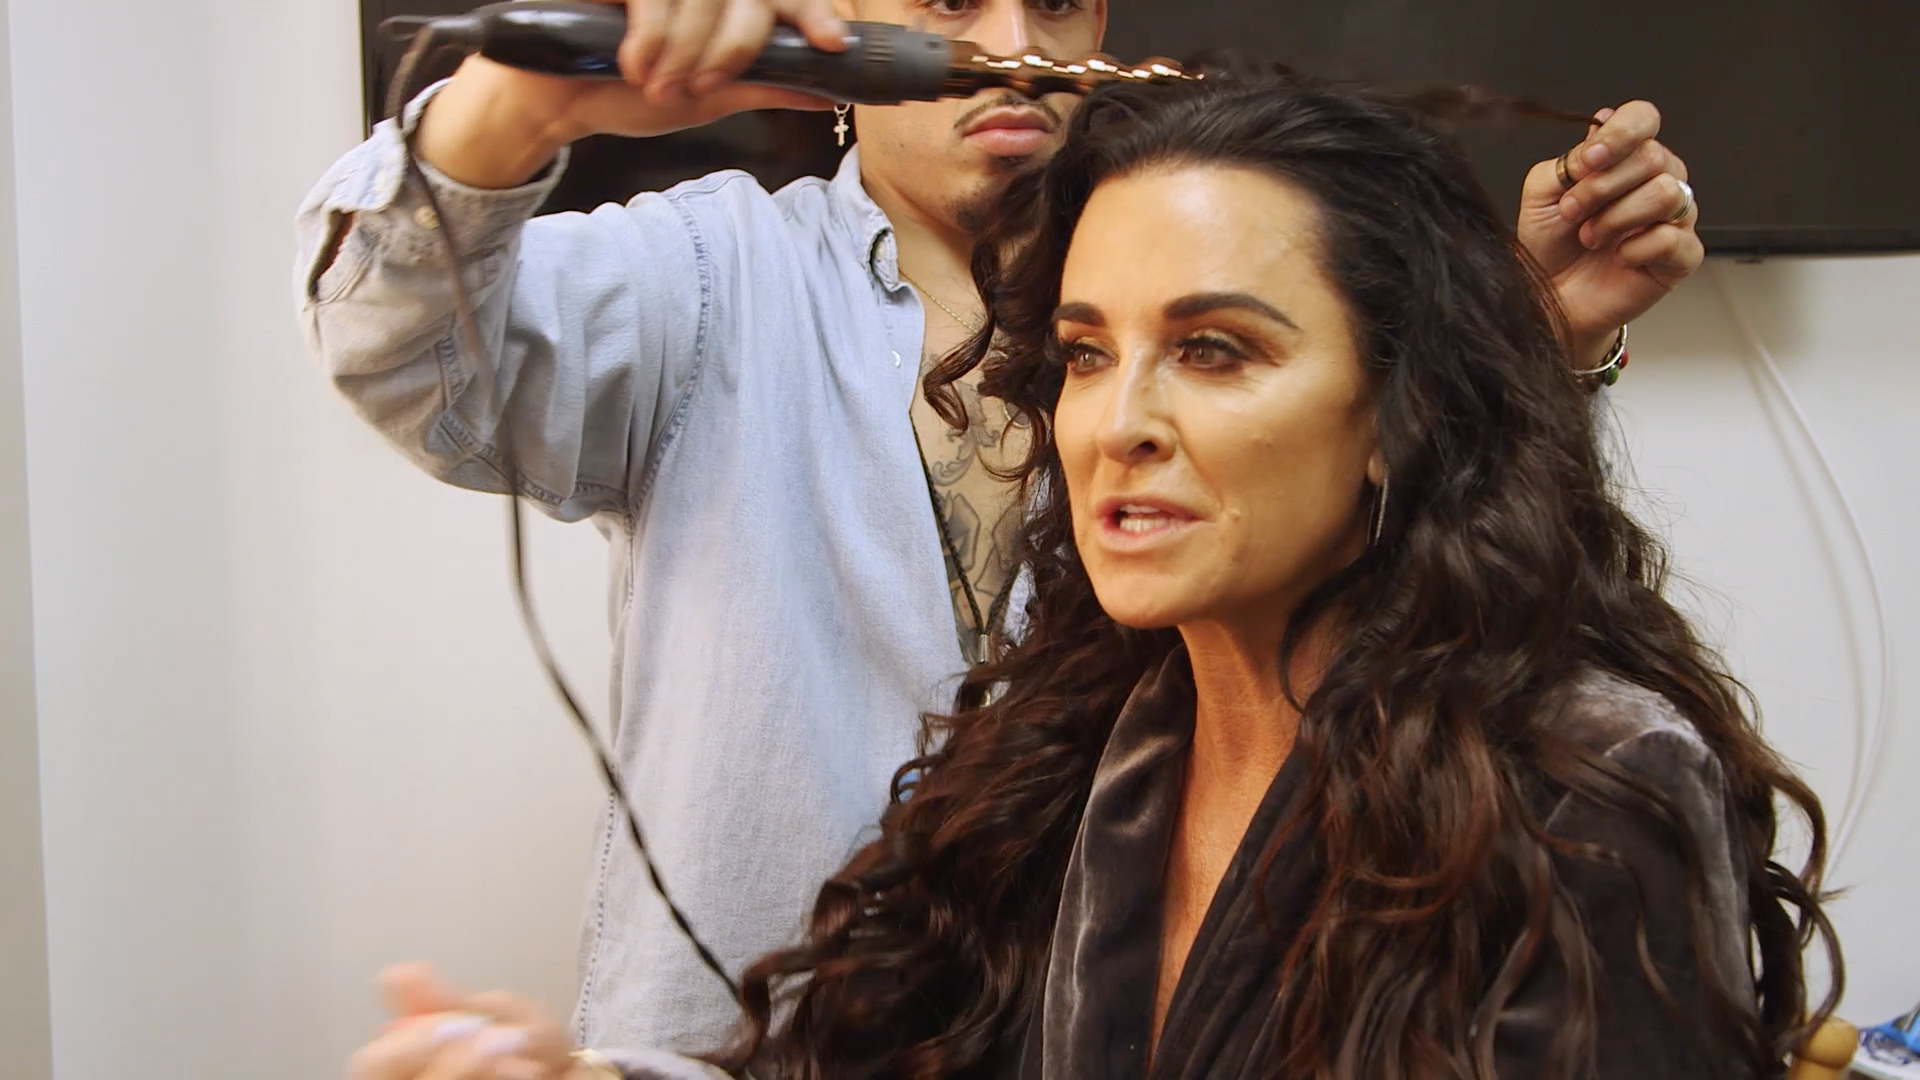 What Did Kyle Richards Think About Brandi Glanville's Season 9 Appearance?